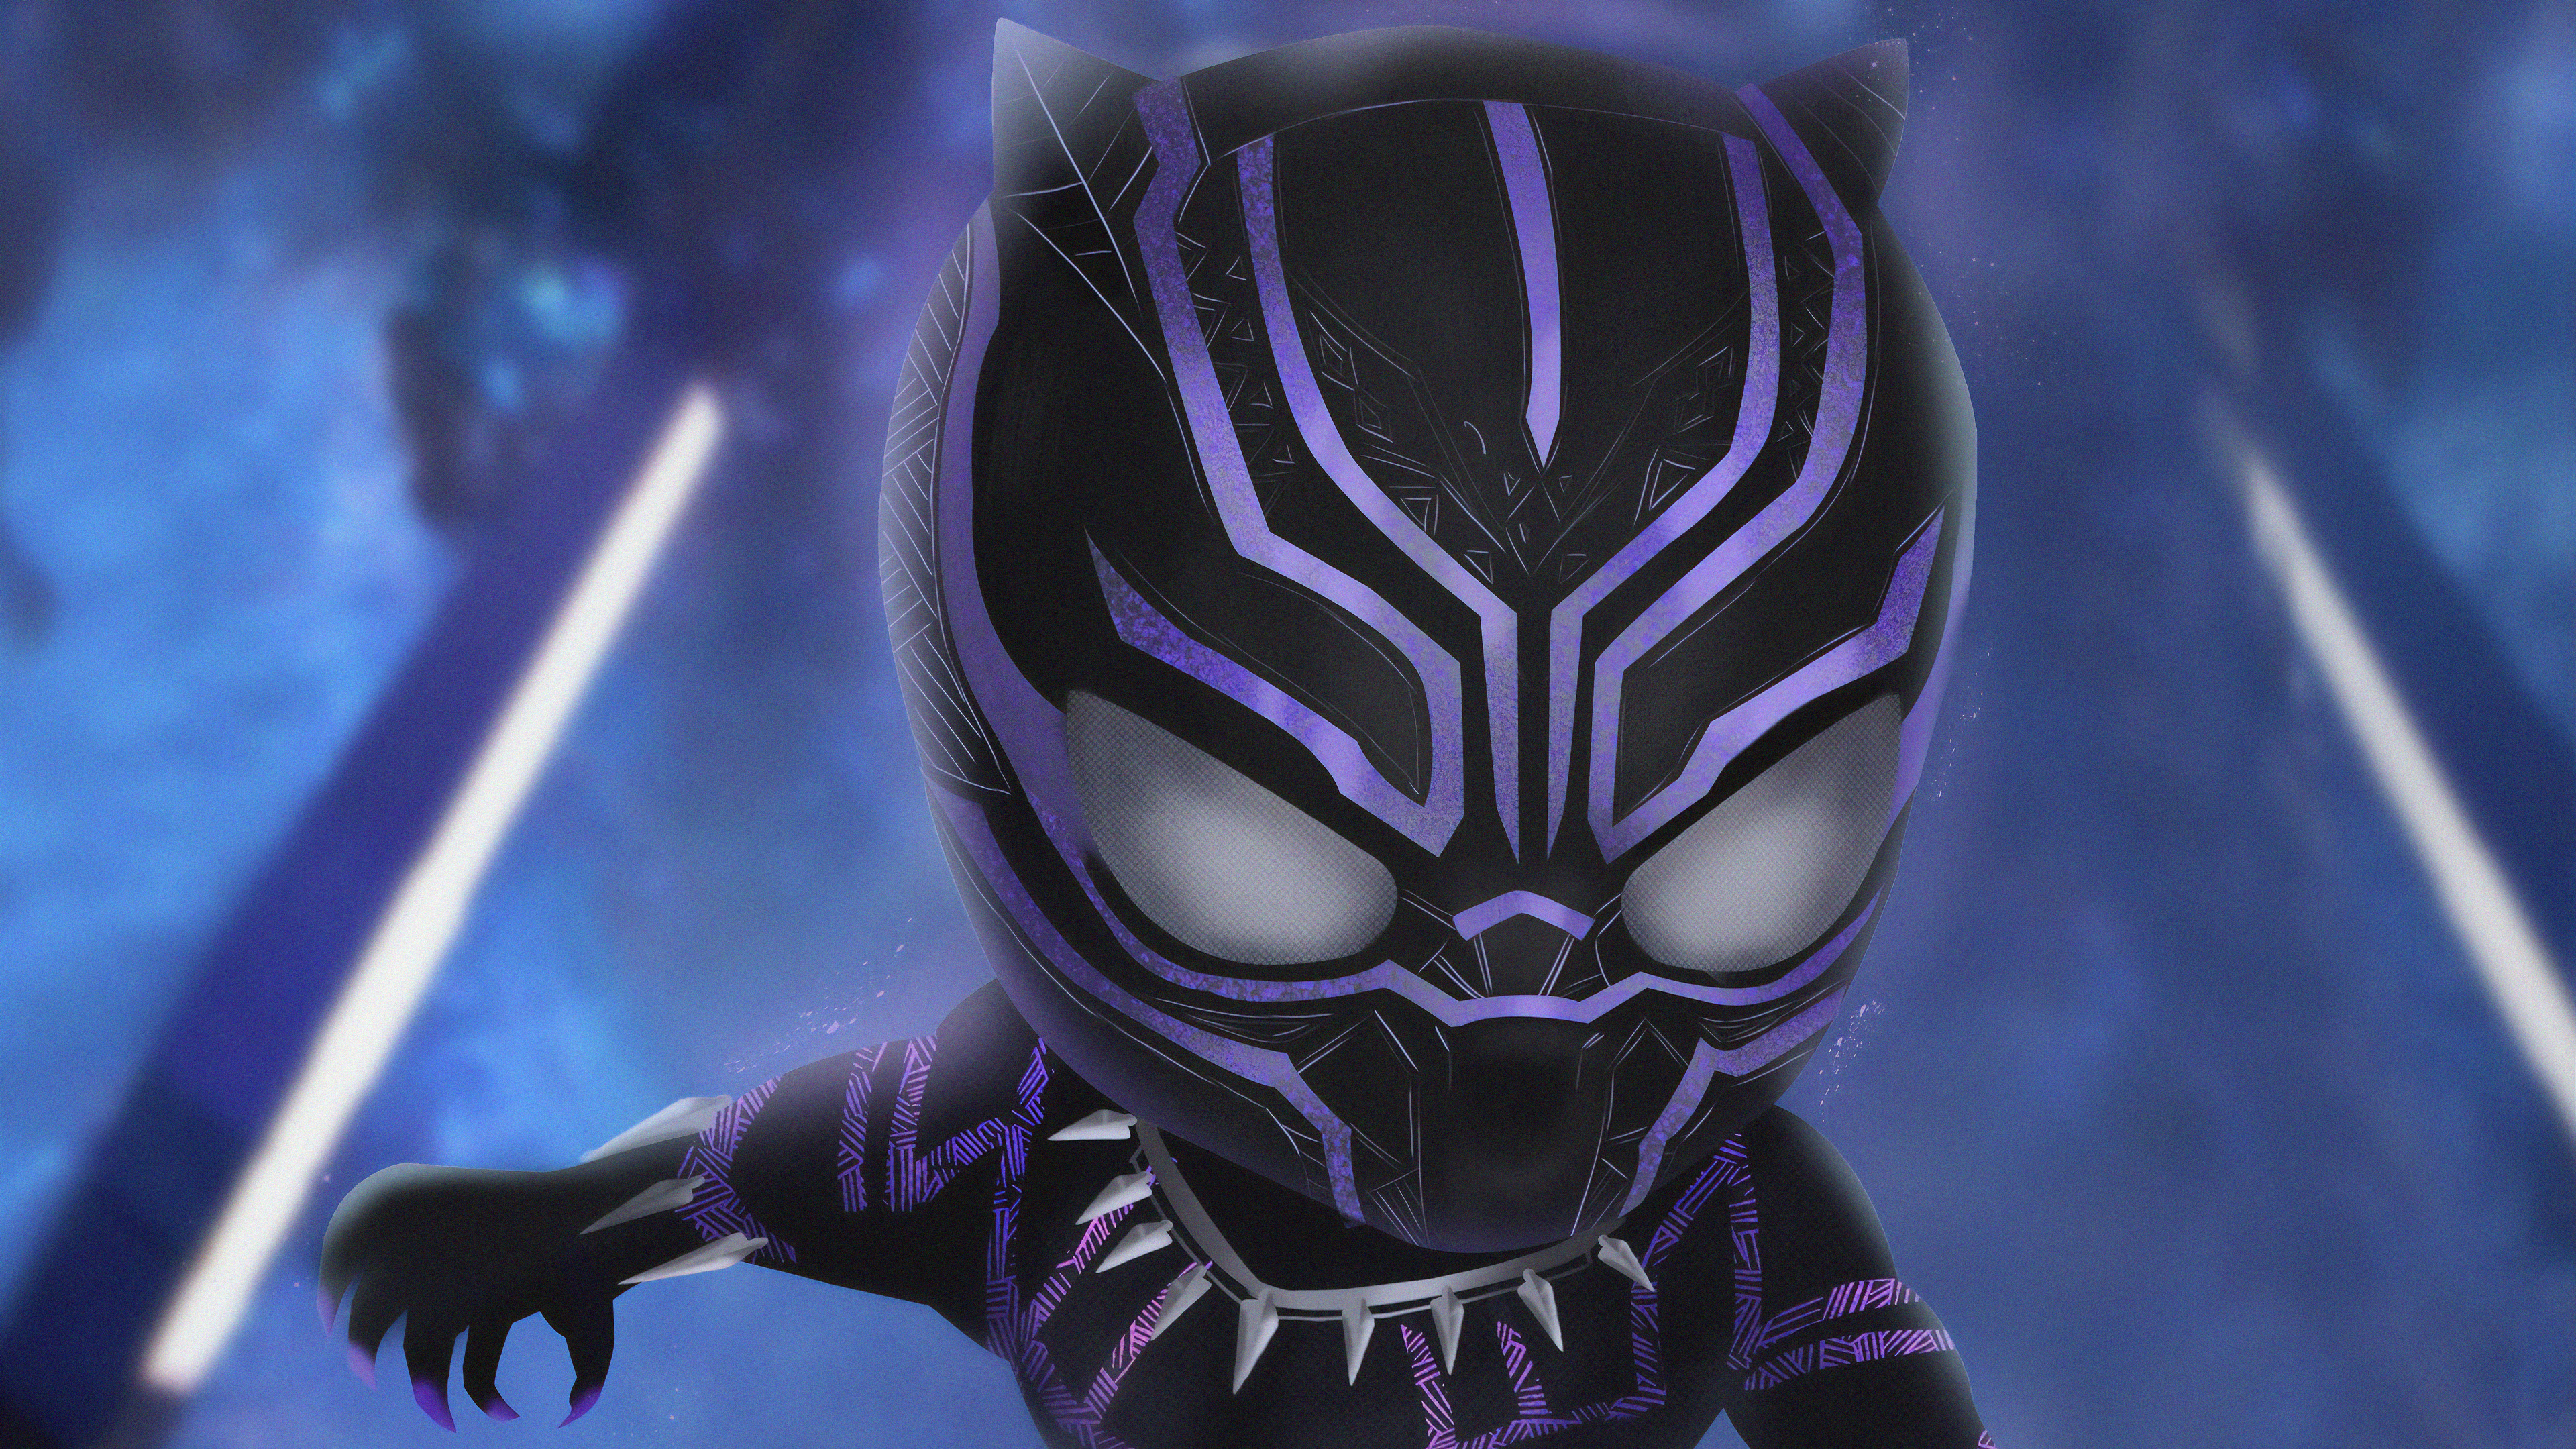 Chibi Black Panther 4k Hd Superheroes 4k Wallpapers Images Backgrounds Photos And Pictures